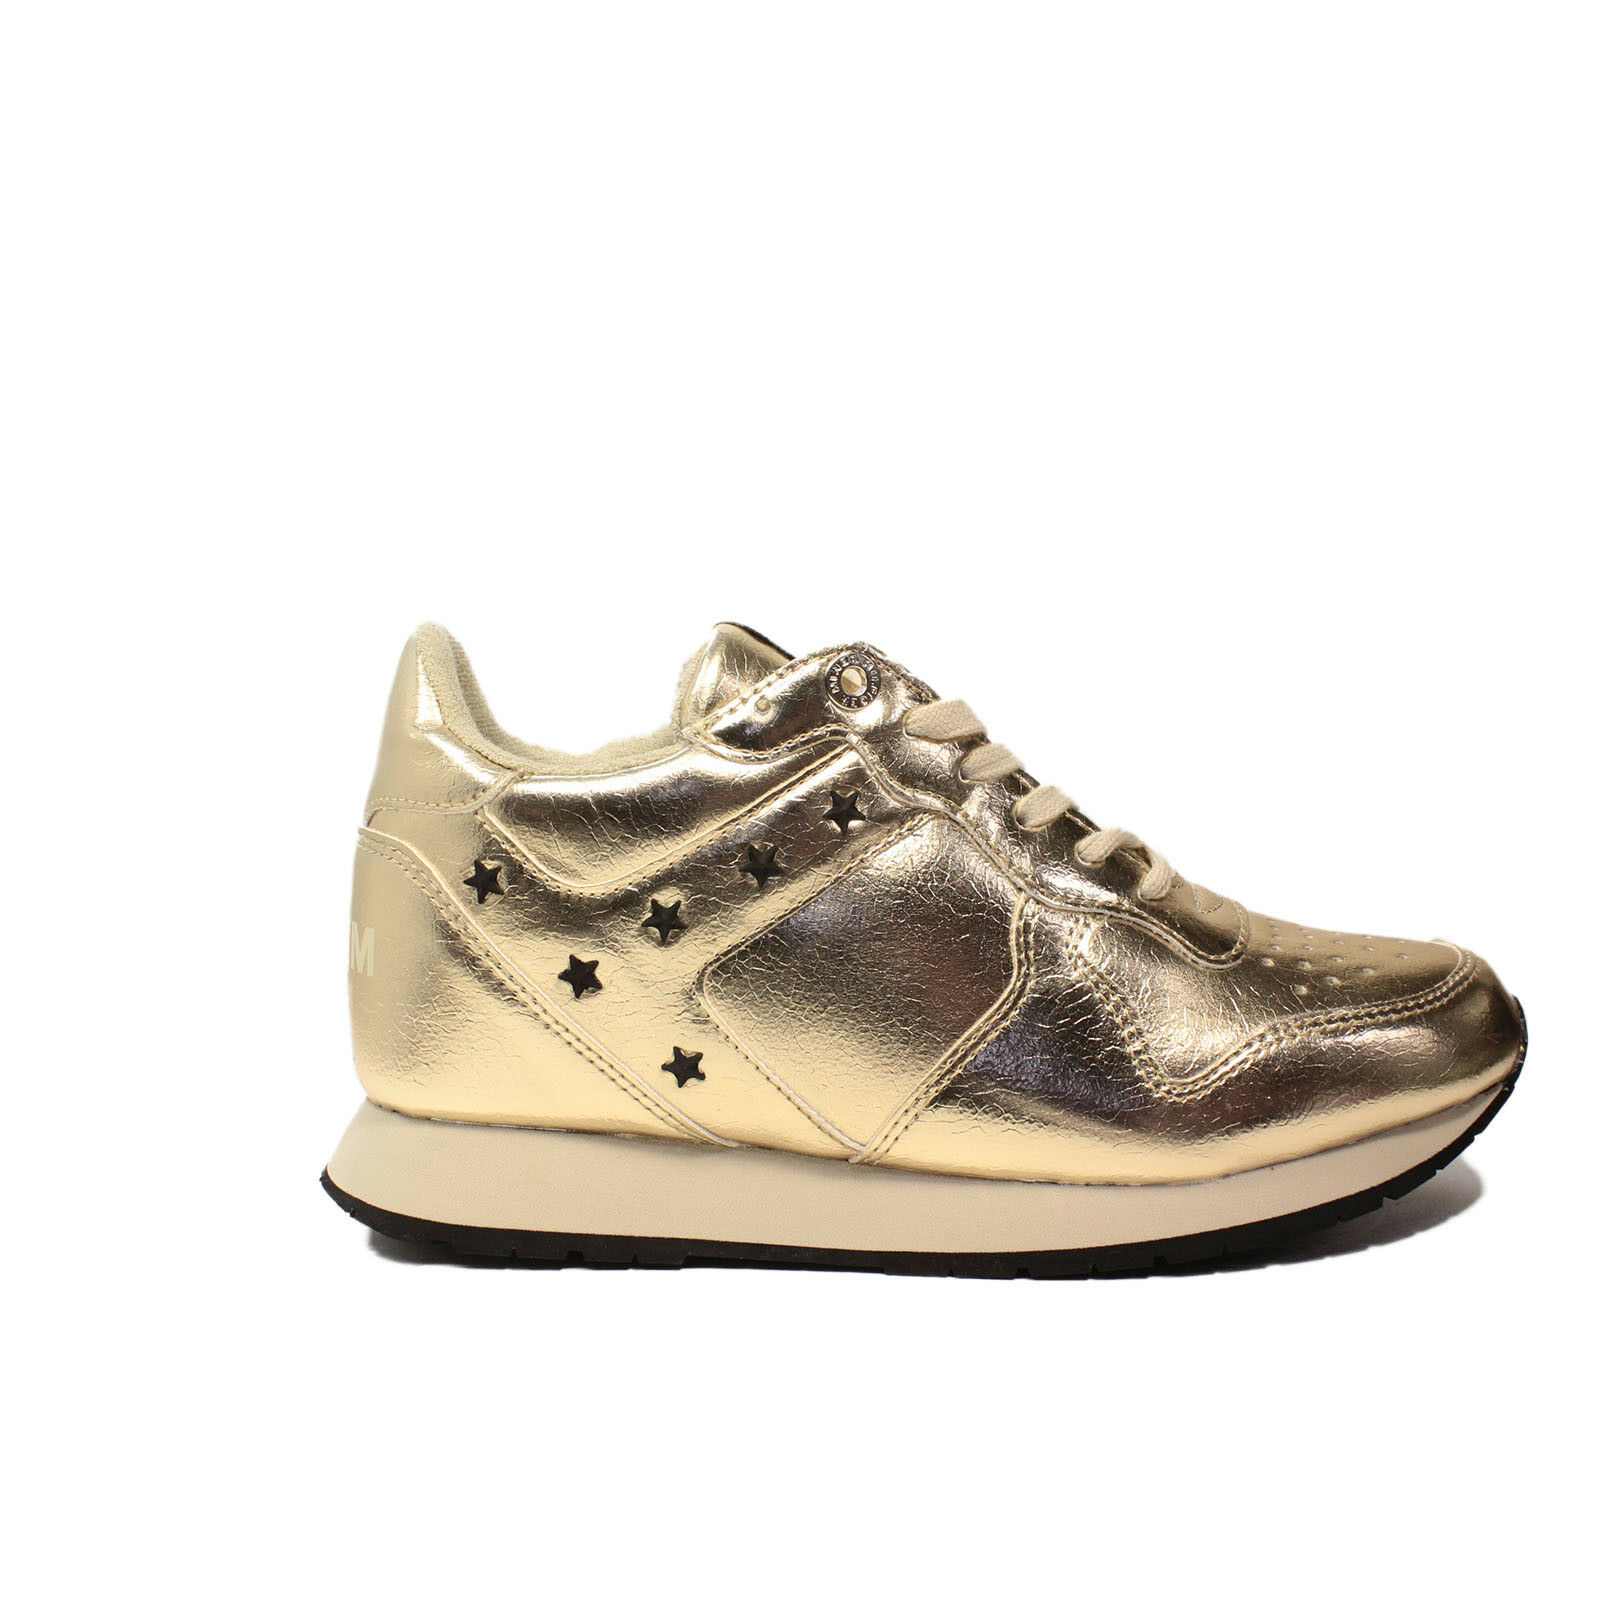 Tommy Hilfiger ginnica Gold donna color oroFW0FW01877/901 Antique Gold ginnica AI 17/18 66af2b